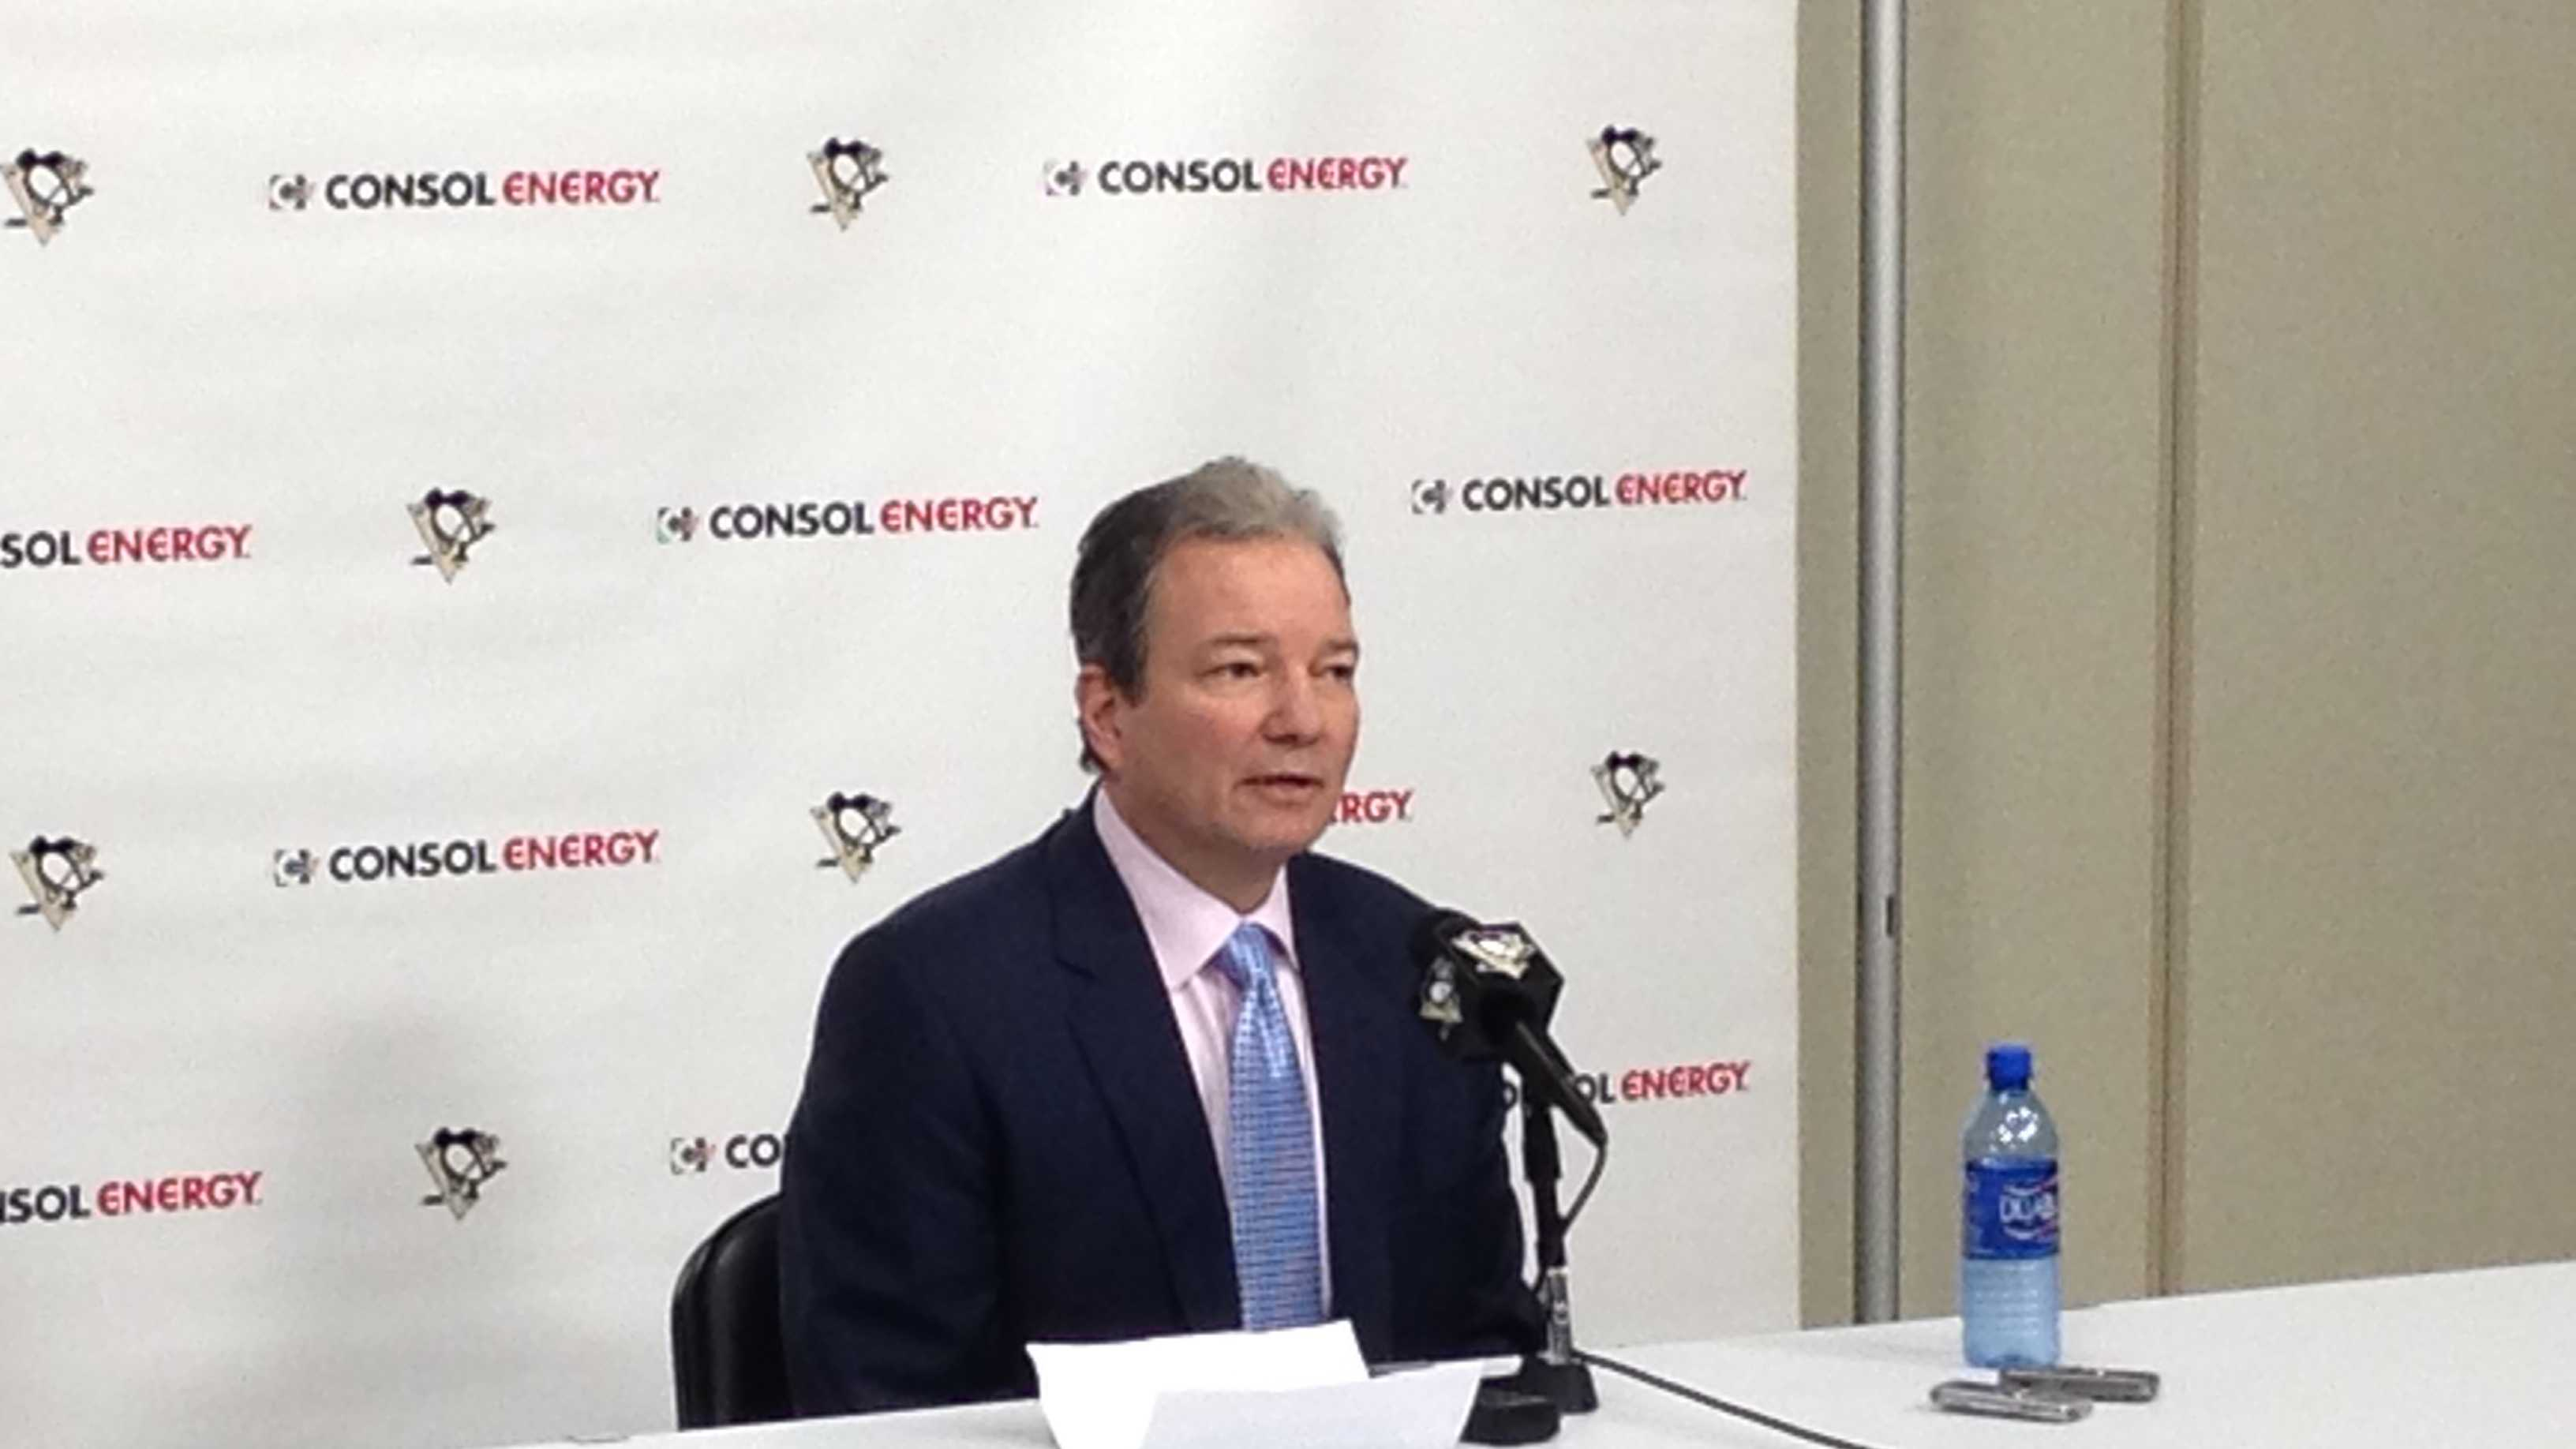 Pittsburgh Penguins General Manager Ray Shero announces 2 year contract extension for Bylsma